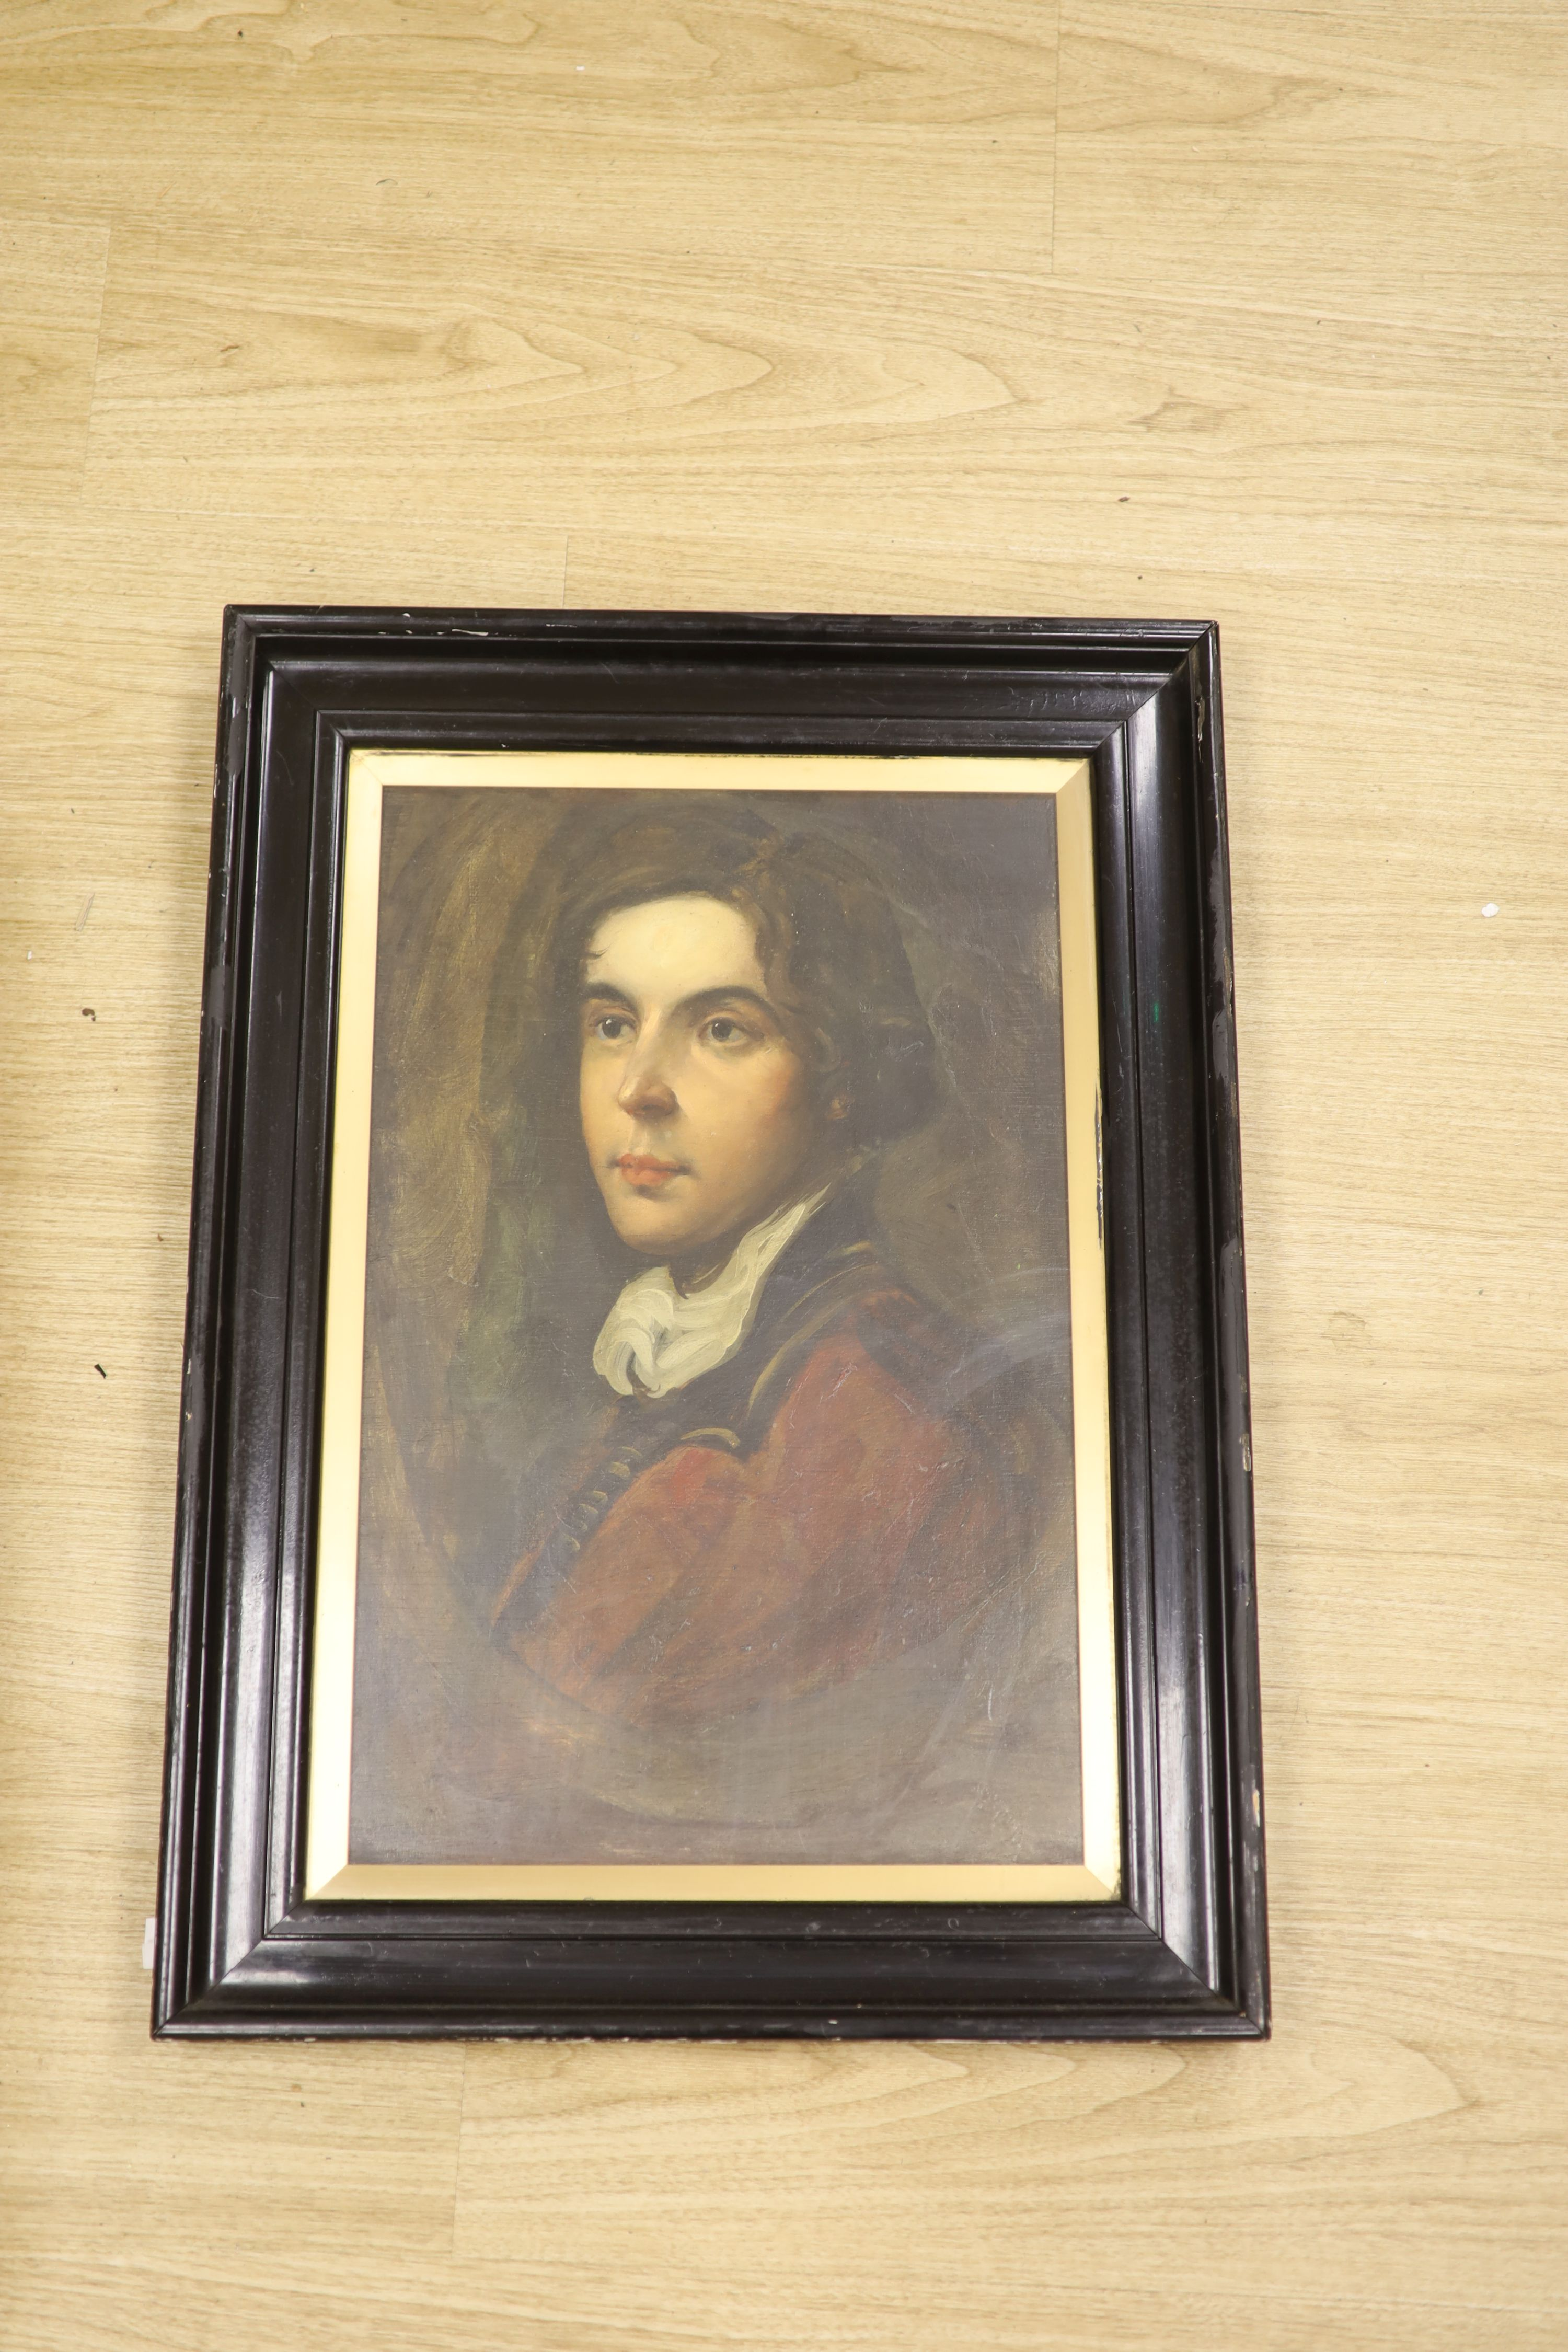 English School c.1910, oil on board, Portrait of an 18th century young man, 56 x 36cm - Image 2 of 2